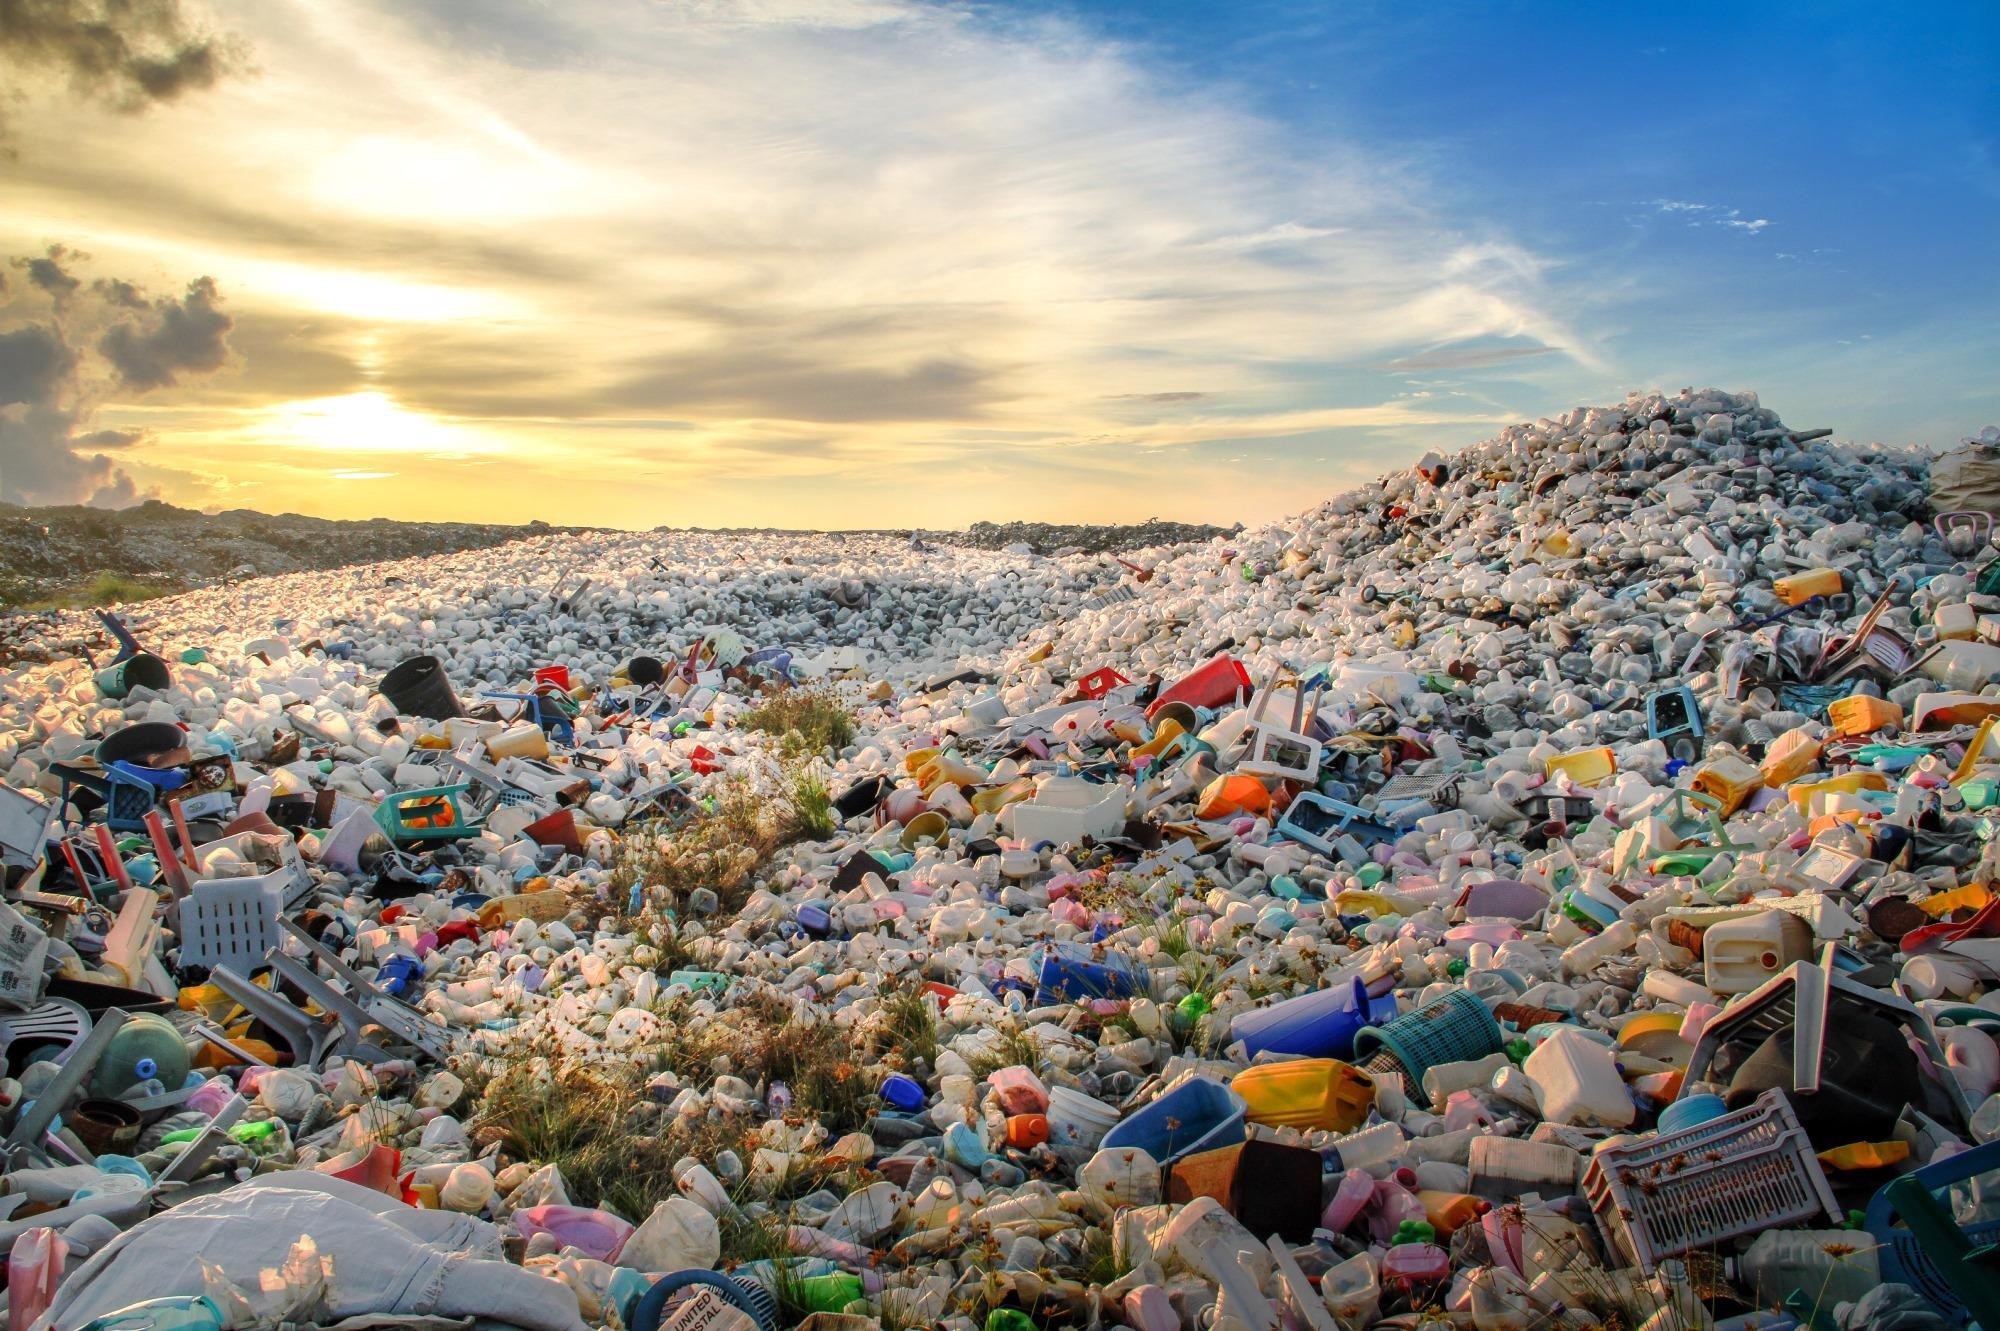 New Projects Could Help Address Energy and Environmental Impacts of Plastics.